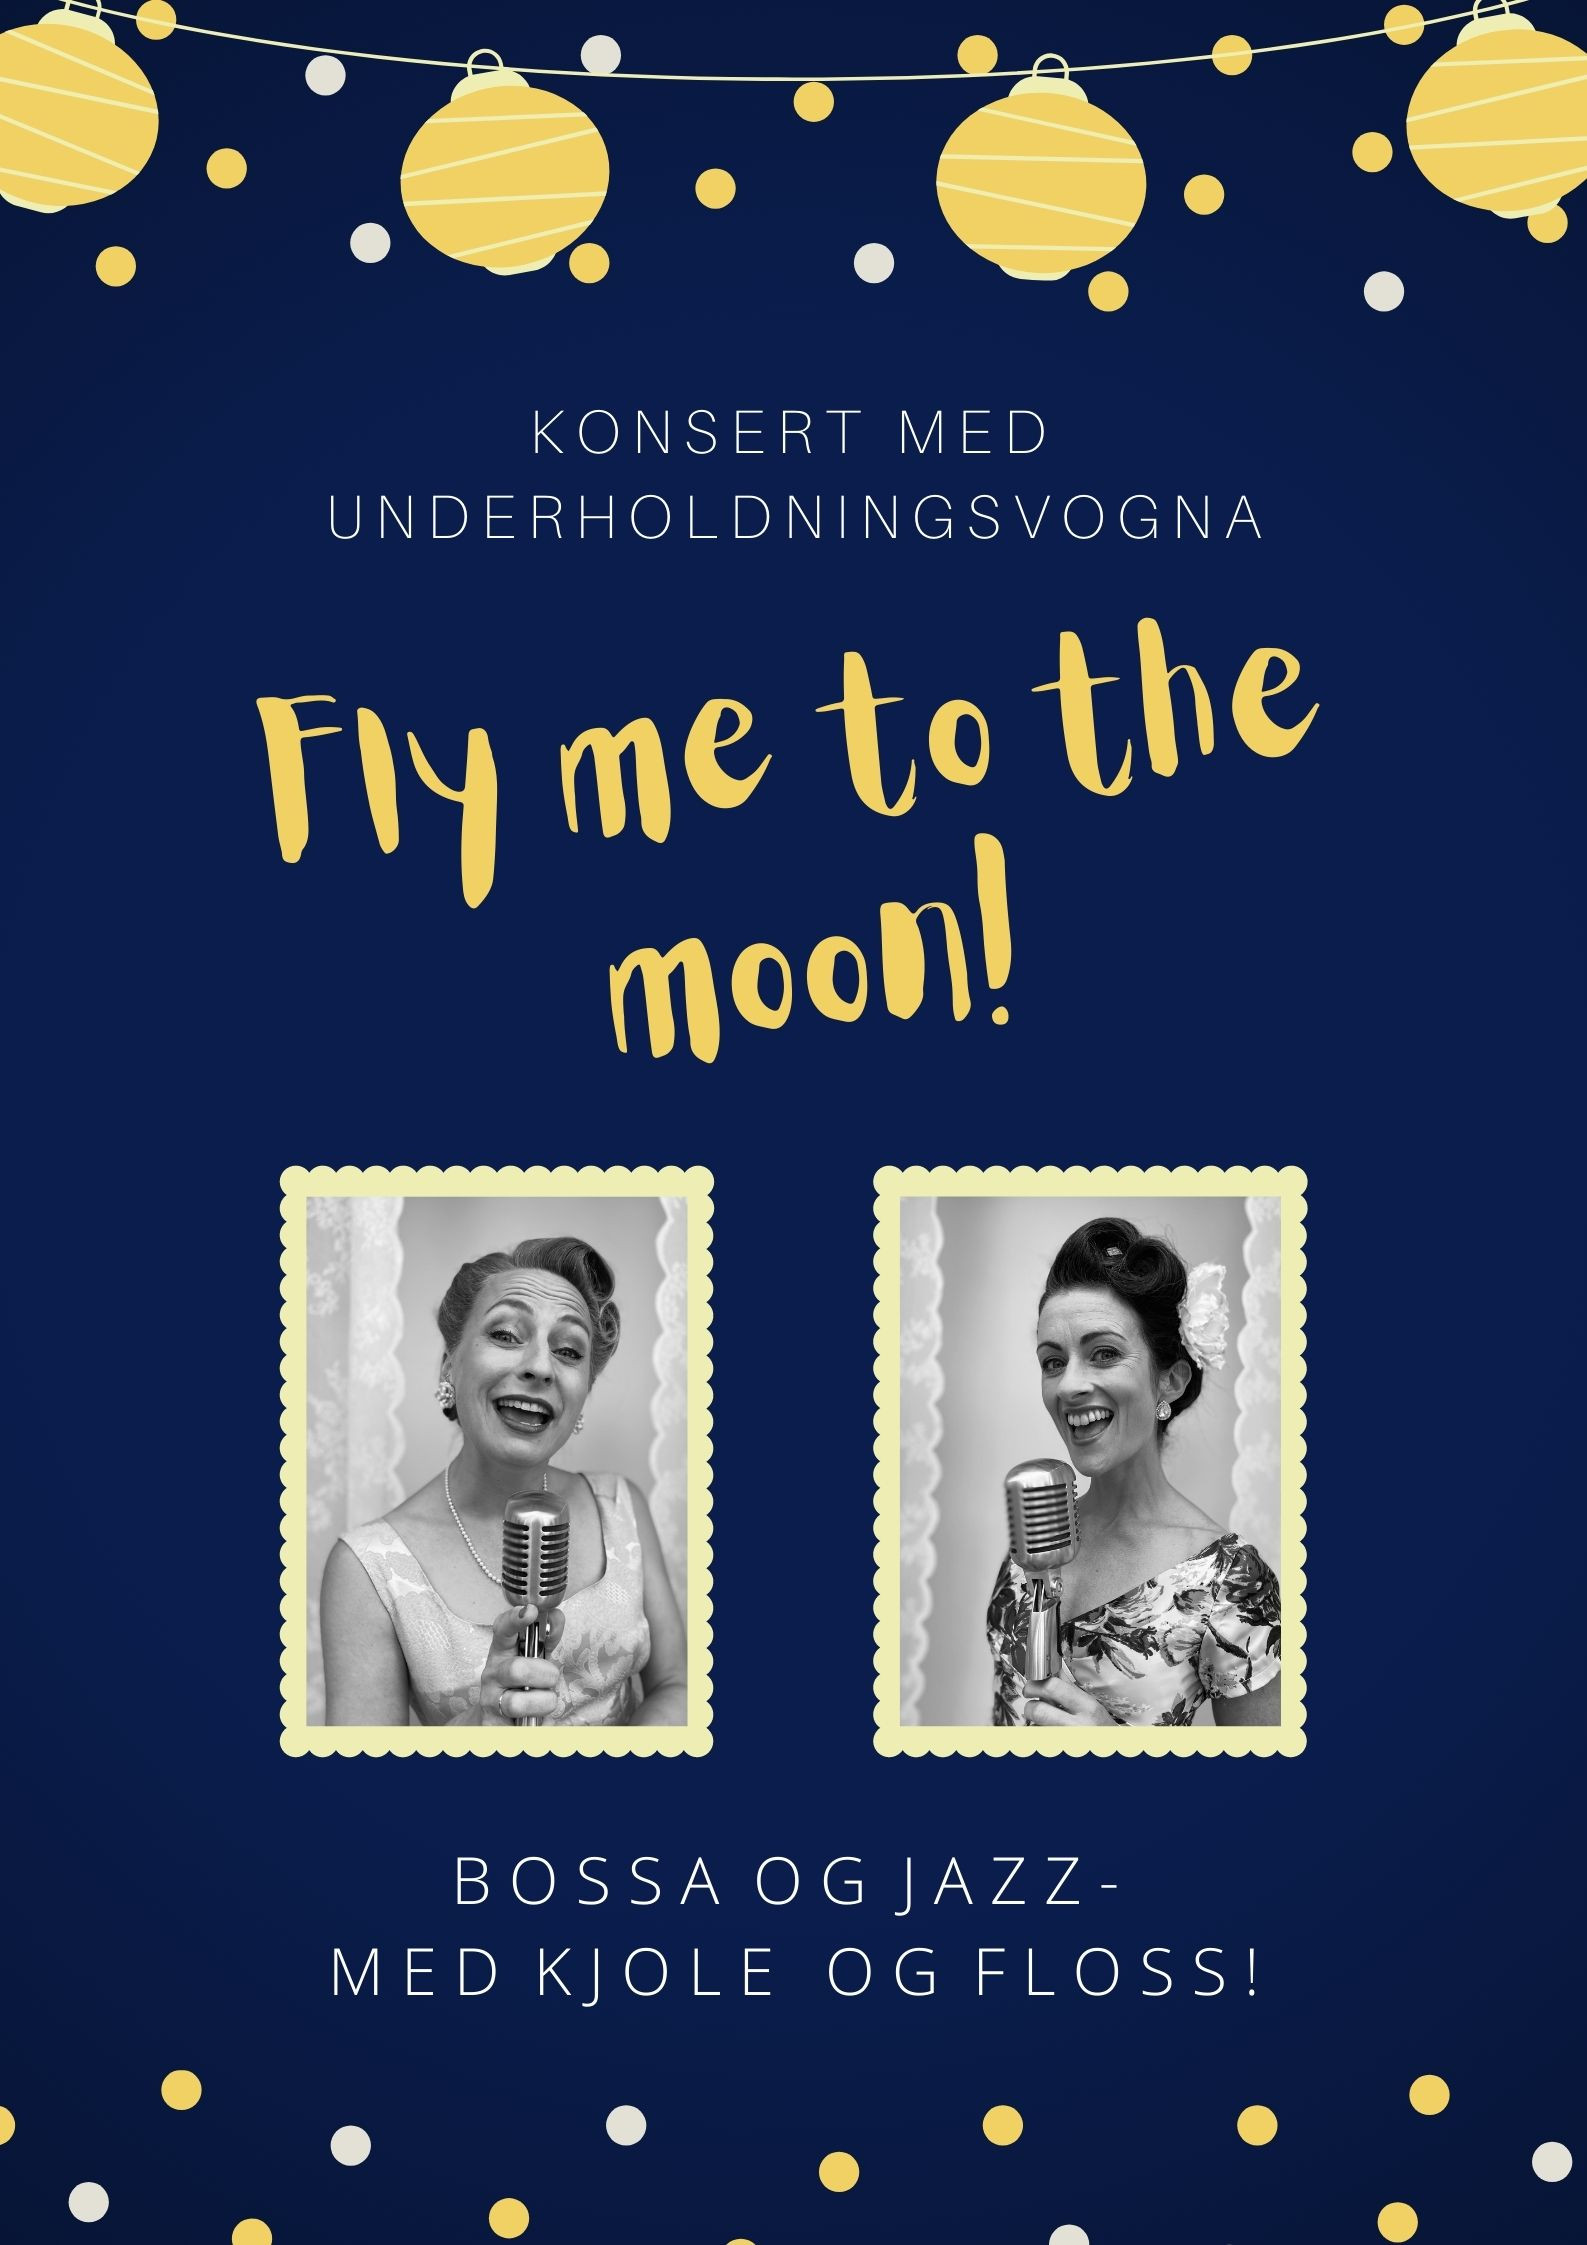 Fly me to the moon - spesialtilbud!